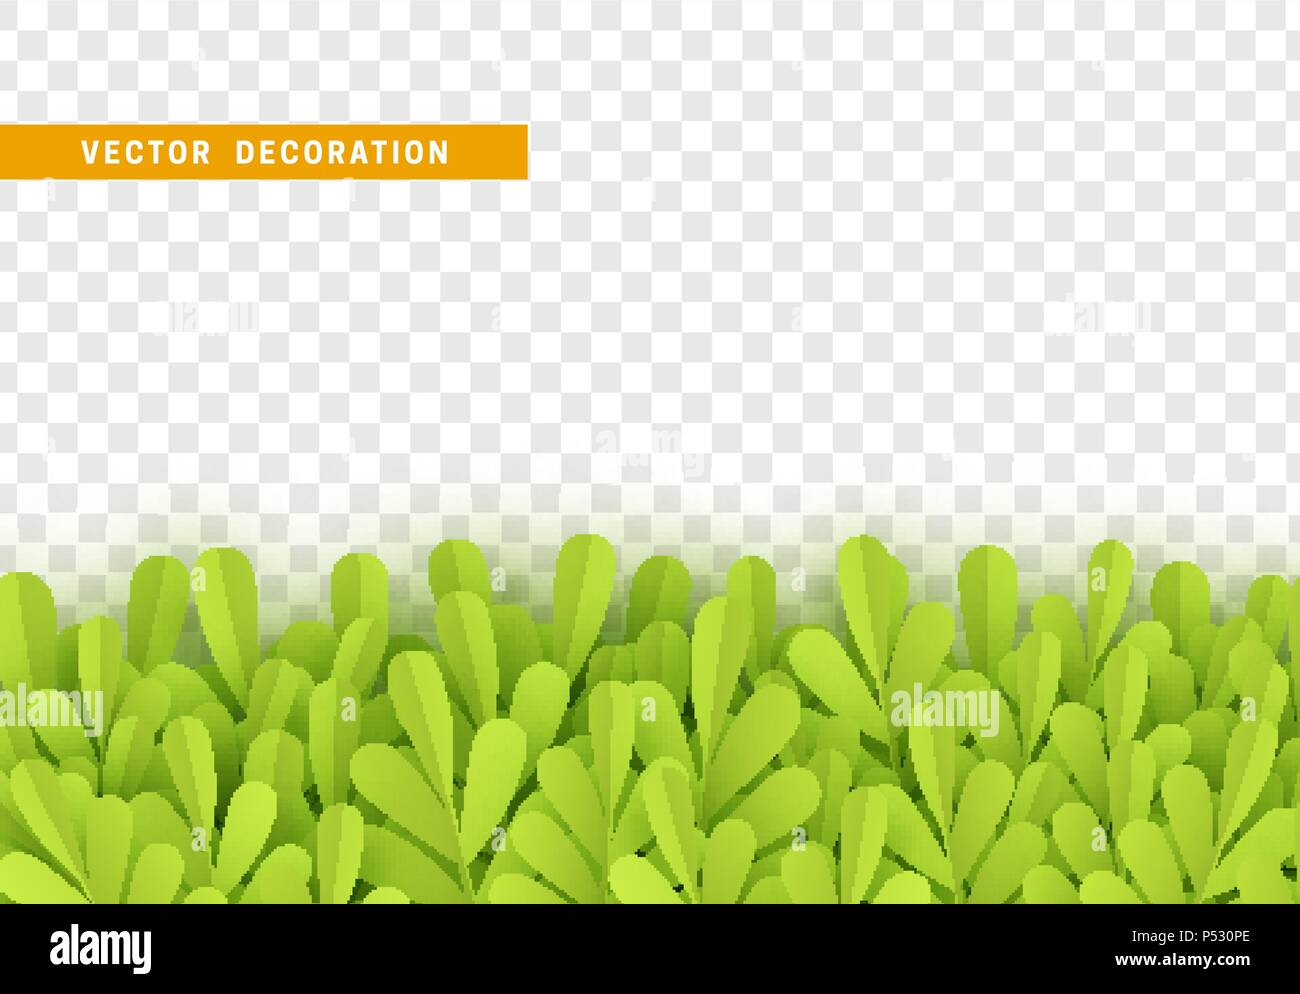 grass border no background green grass grass shape plant leaves border isolated with transparent background vector illustration stock grass border cut out images alamy